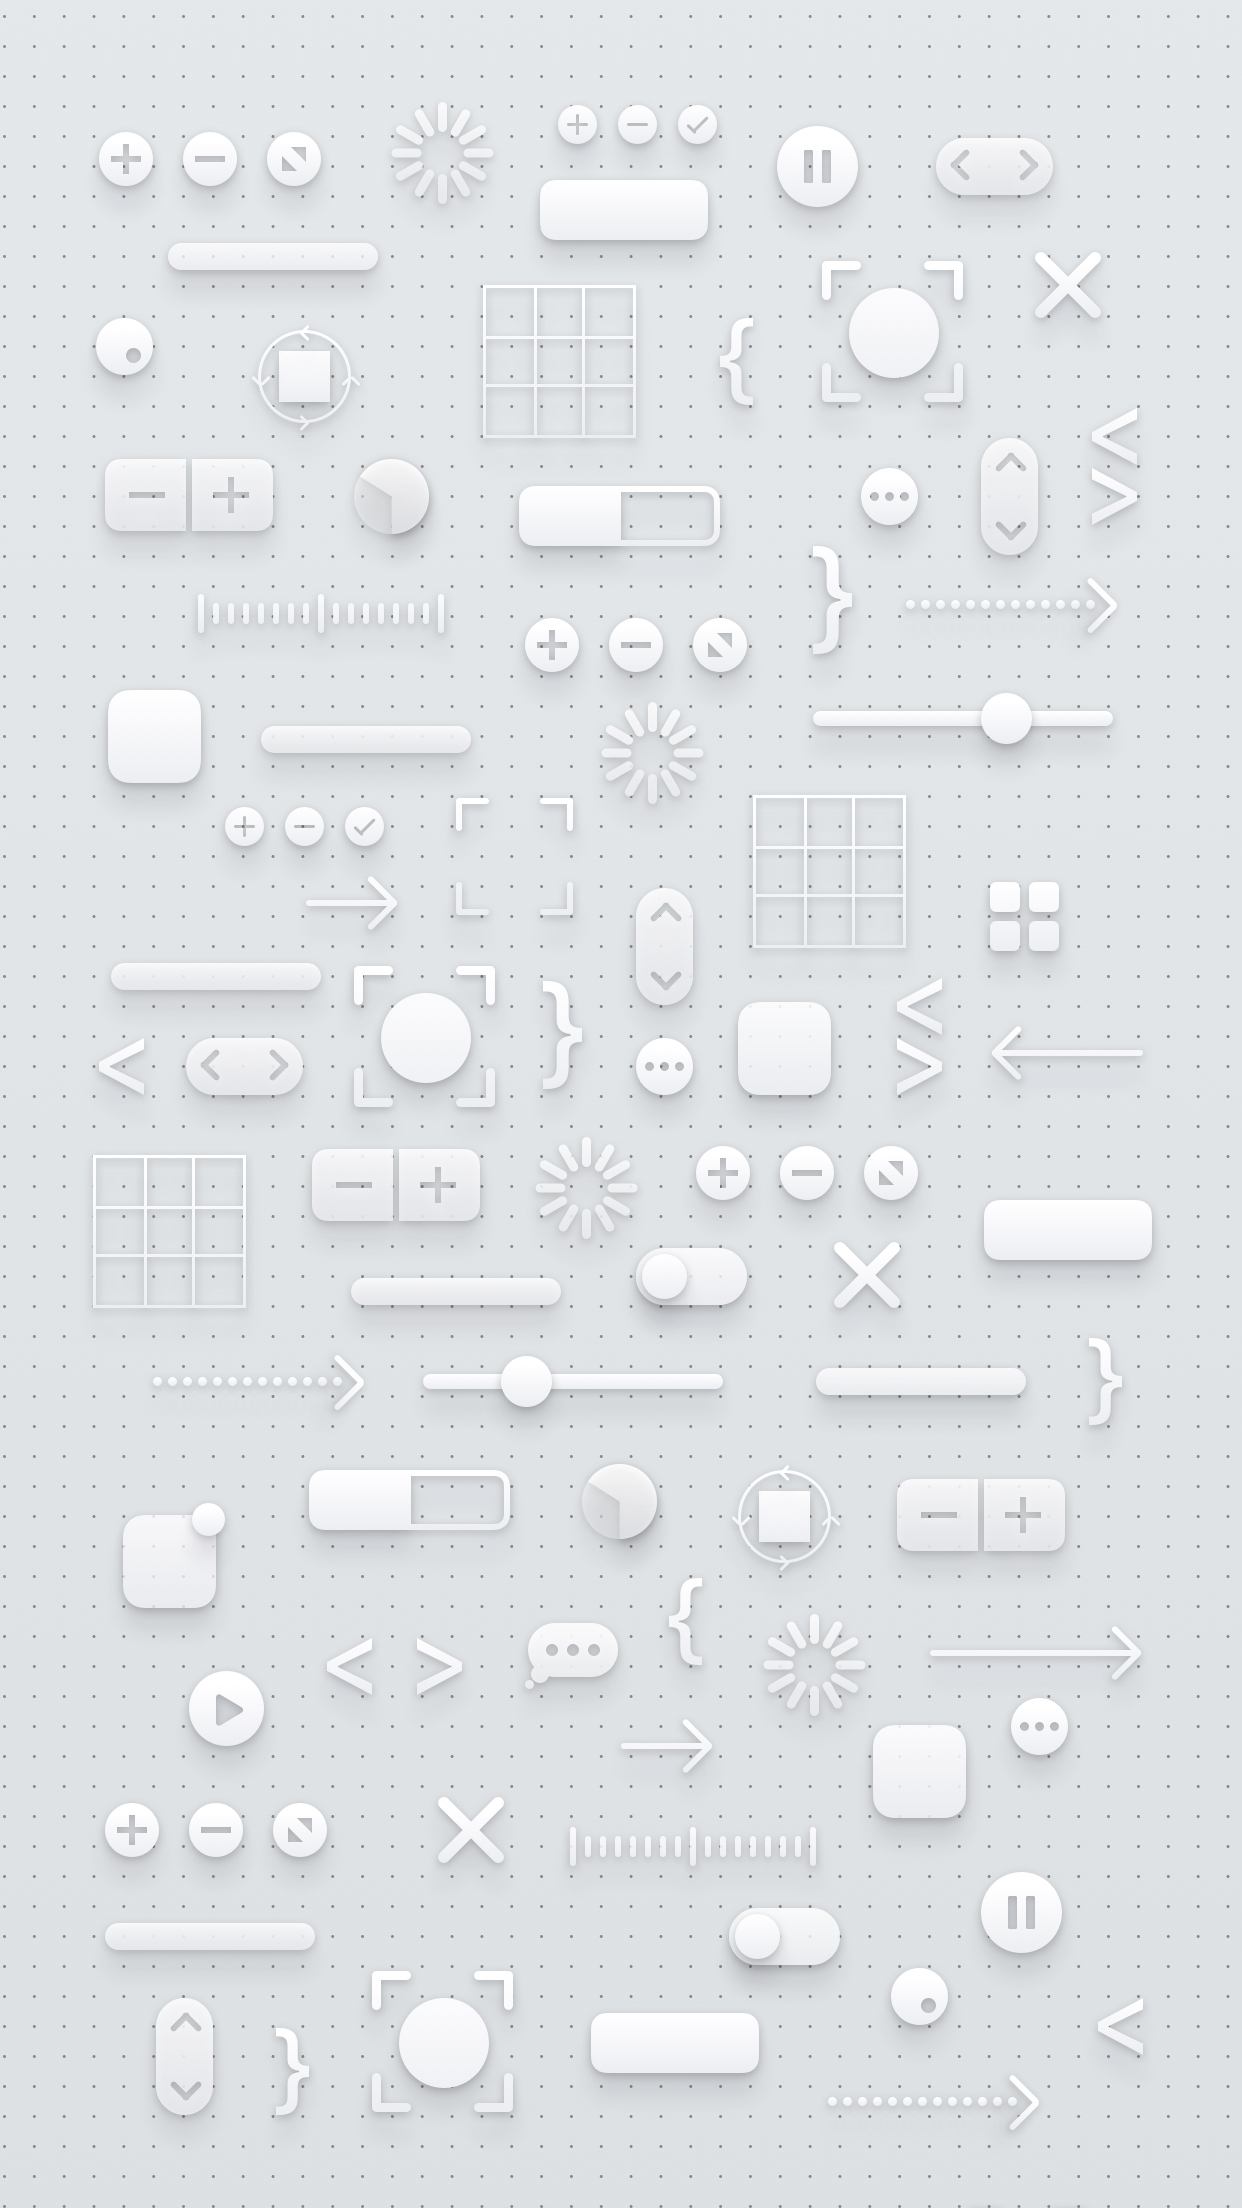 Wwdc Iphone Wallpapers